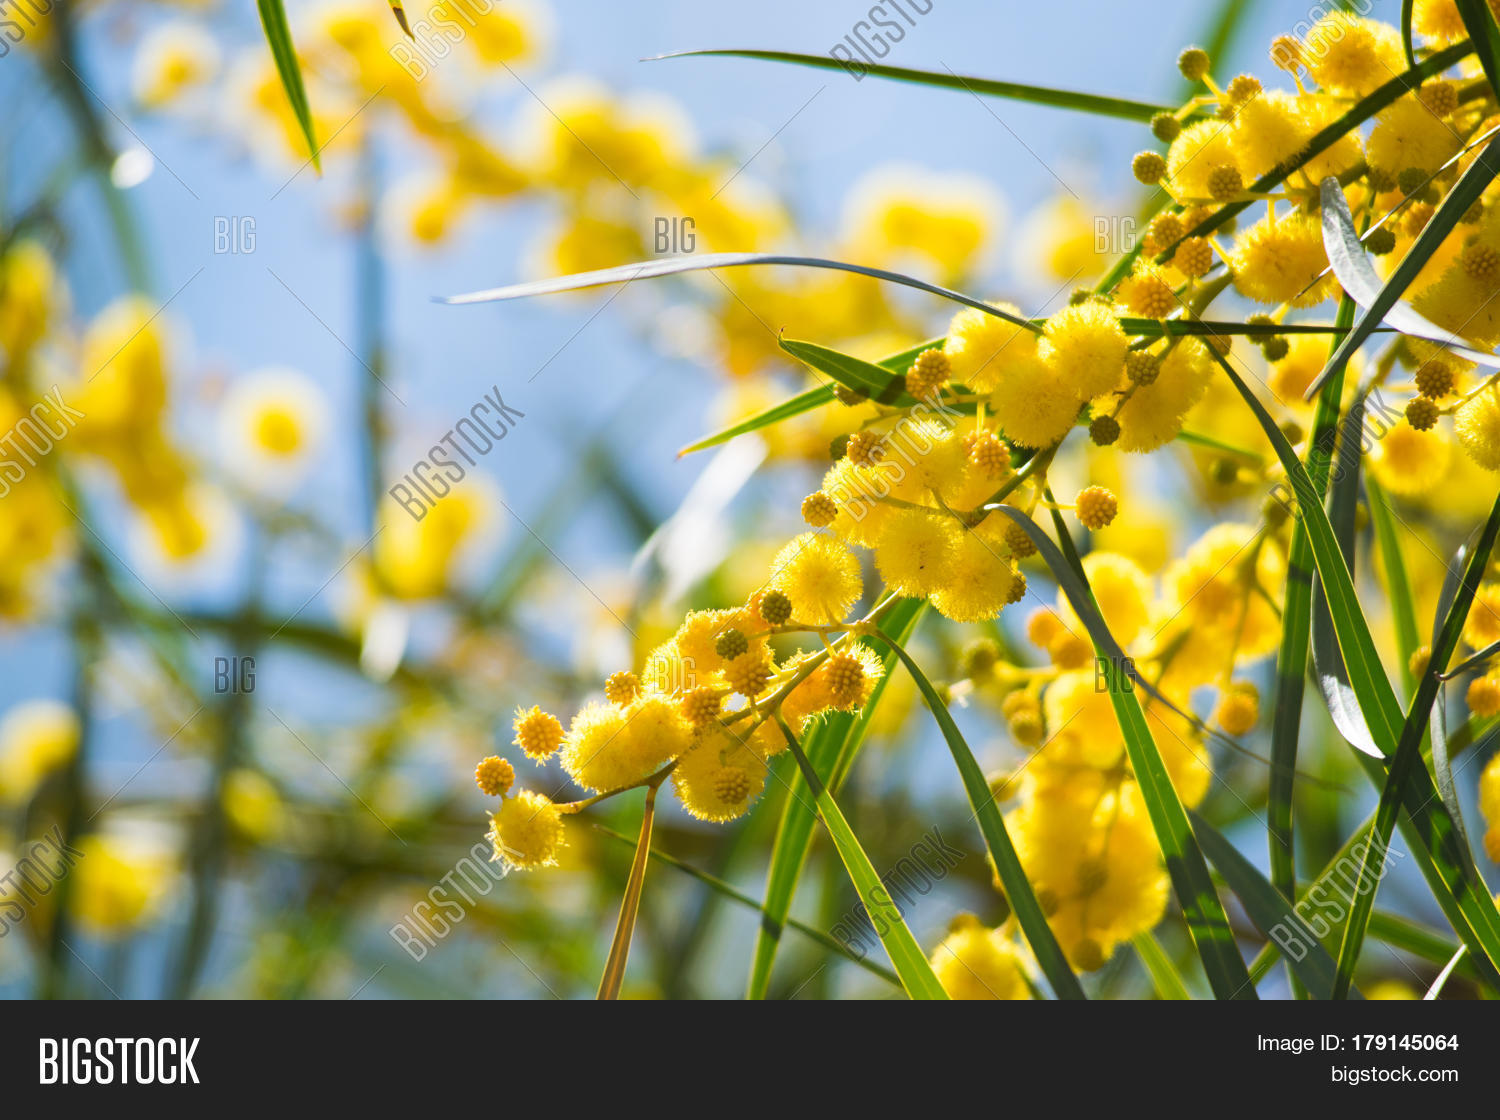 Blossoming mimosa tree image photo free trial bigstock blossoming of mimosa tree acacia pycnantha golden wattle close up in spring mightylinksfo